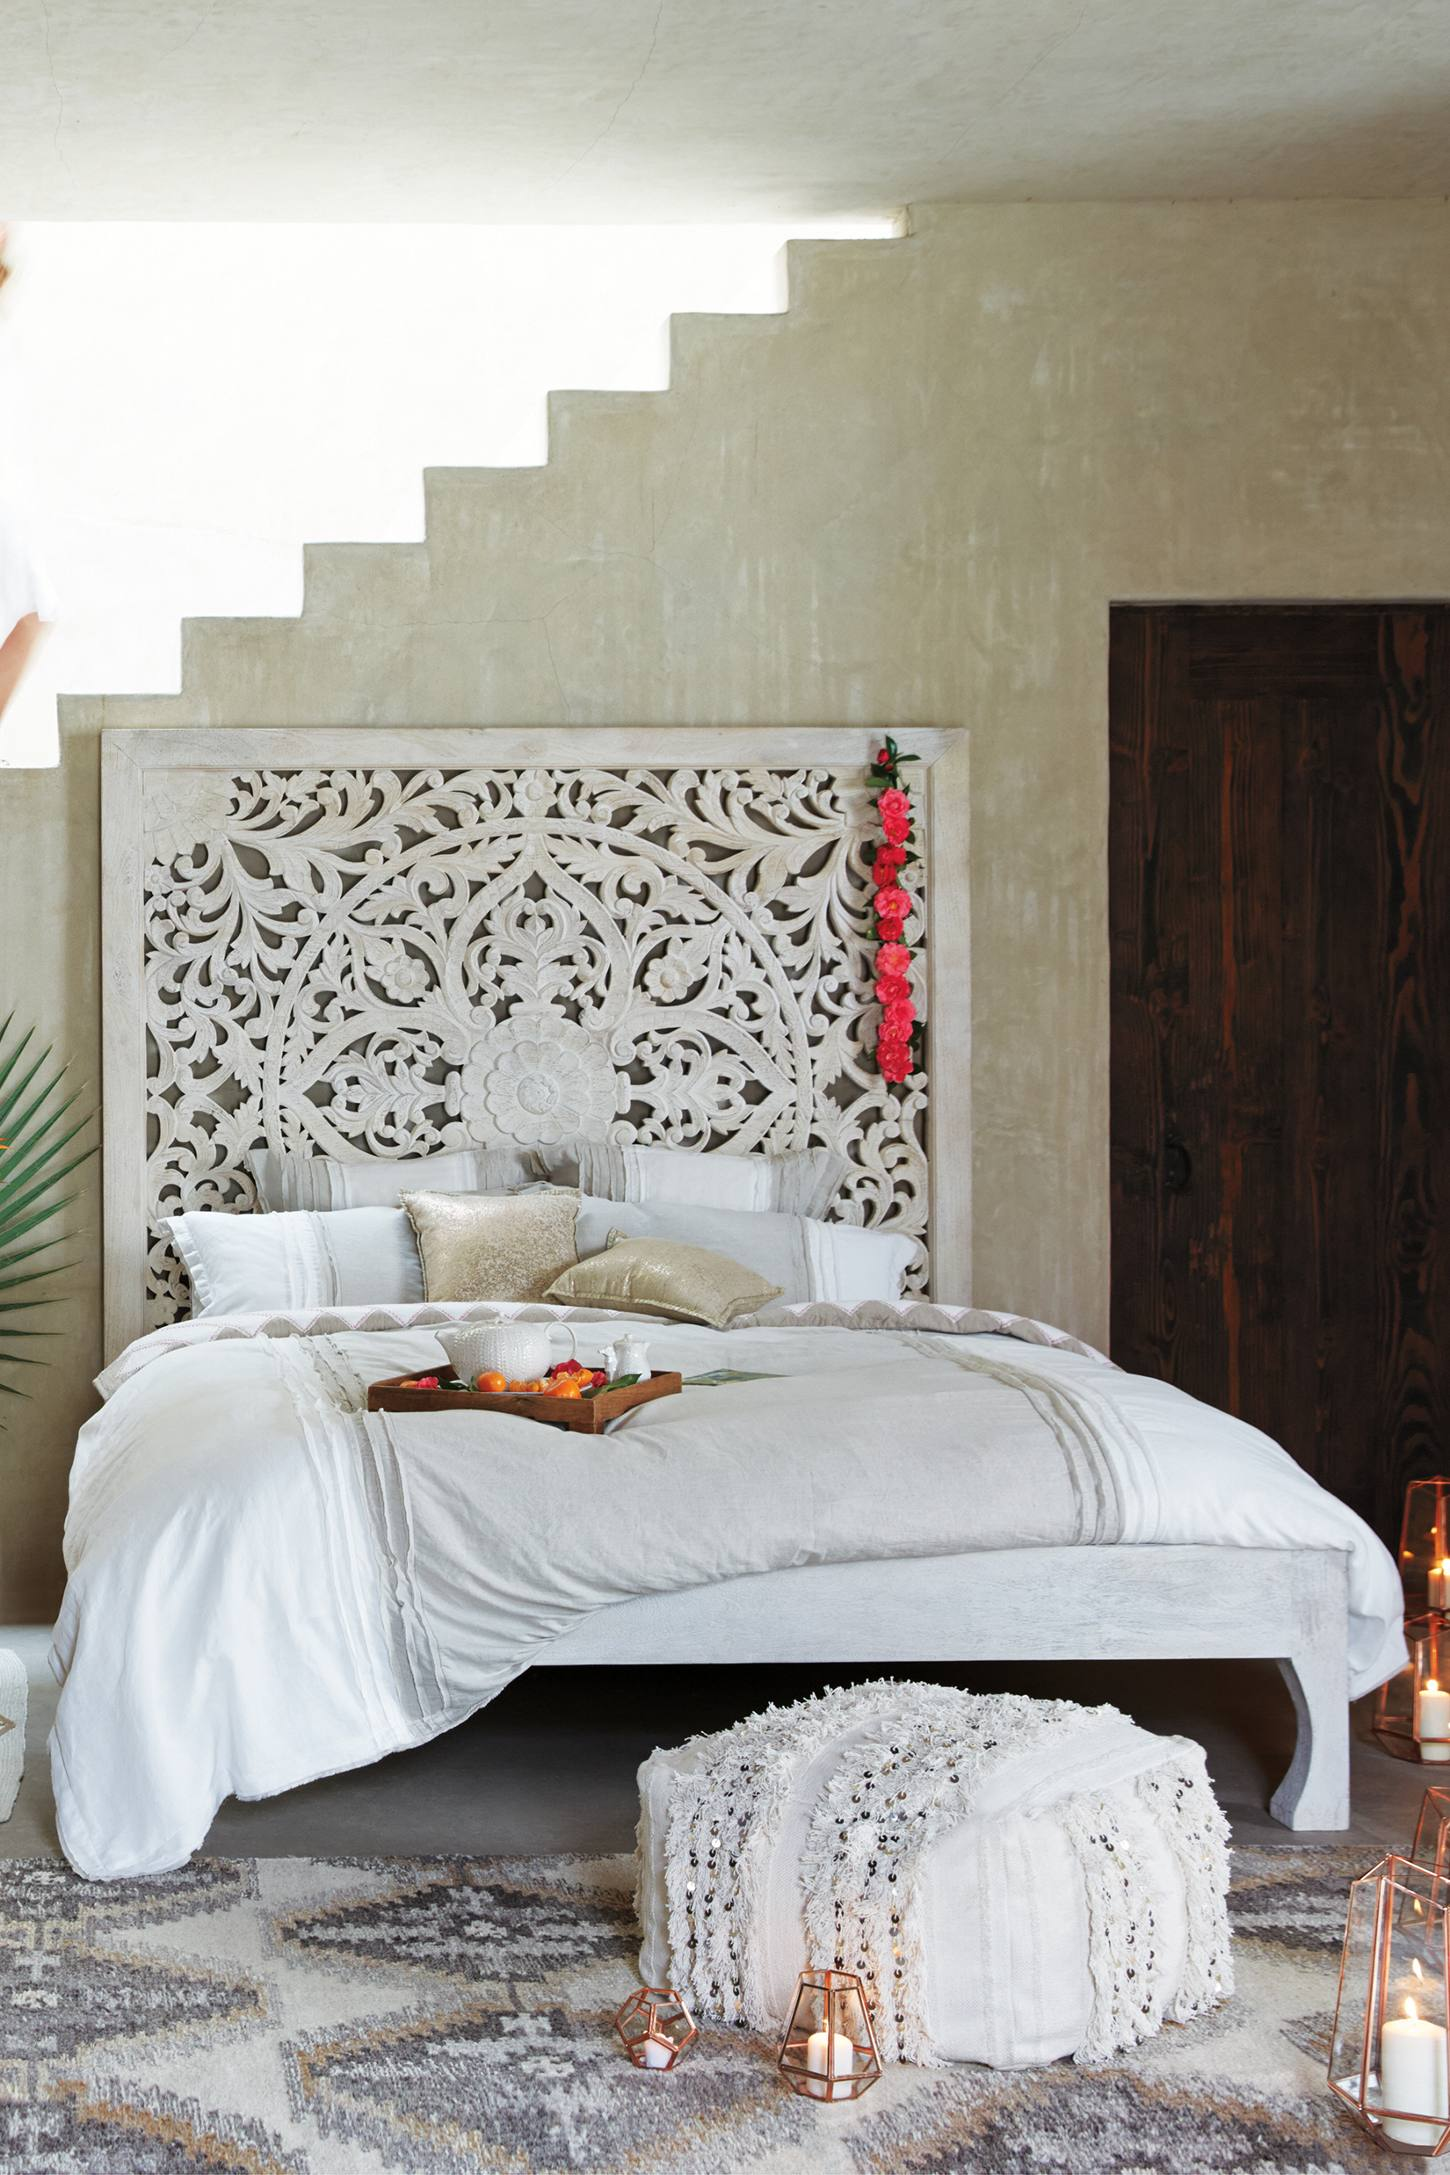 lombok bed anthropologie. Black Bedroom Furniture Sets. Home Design Ideas